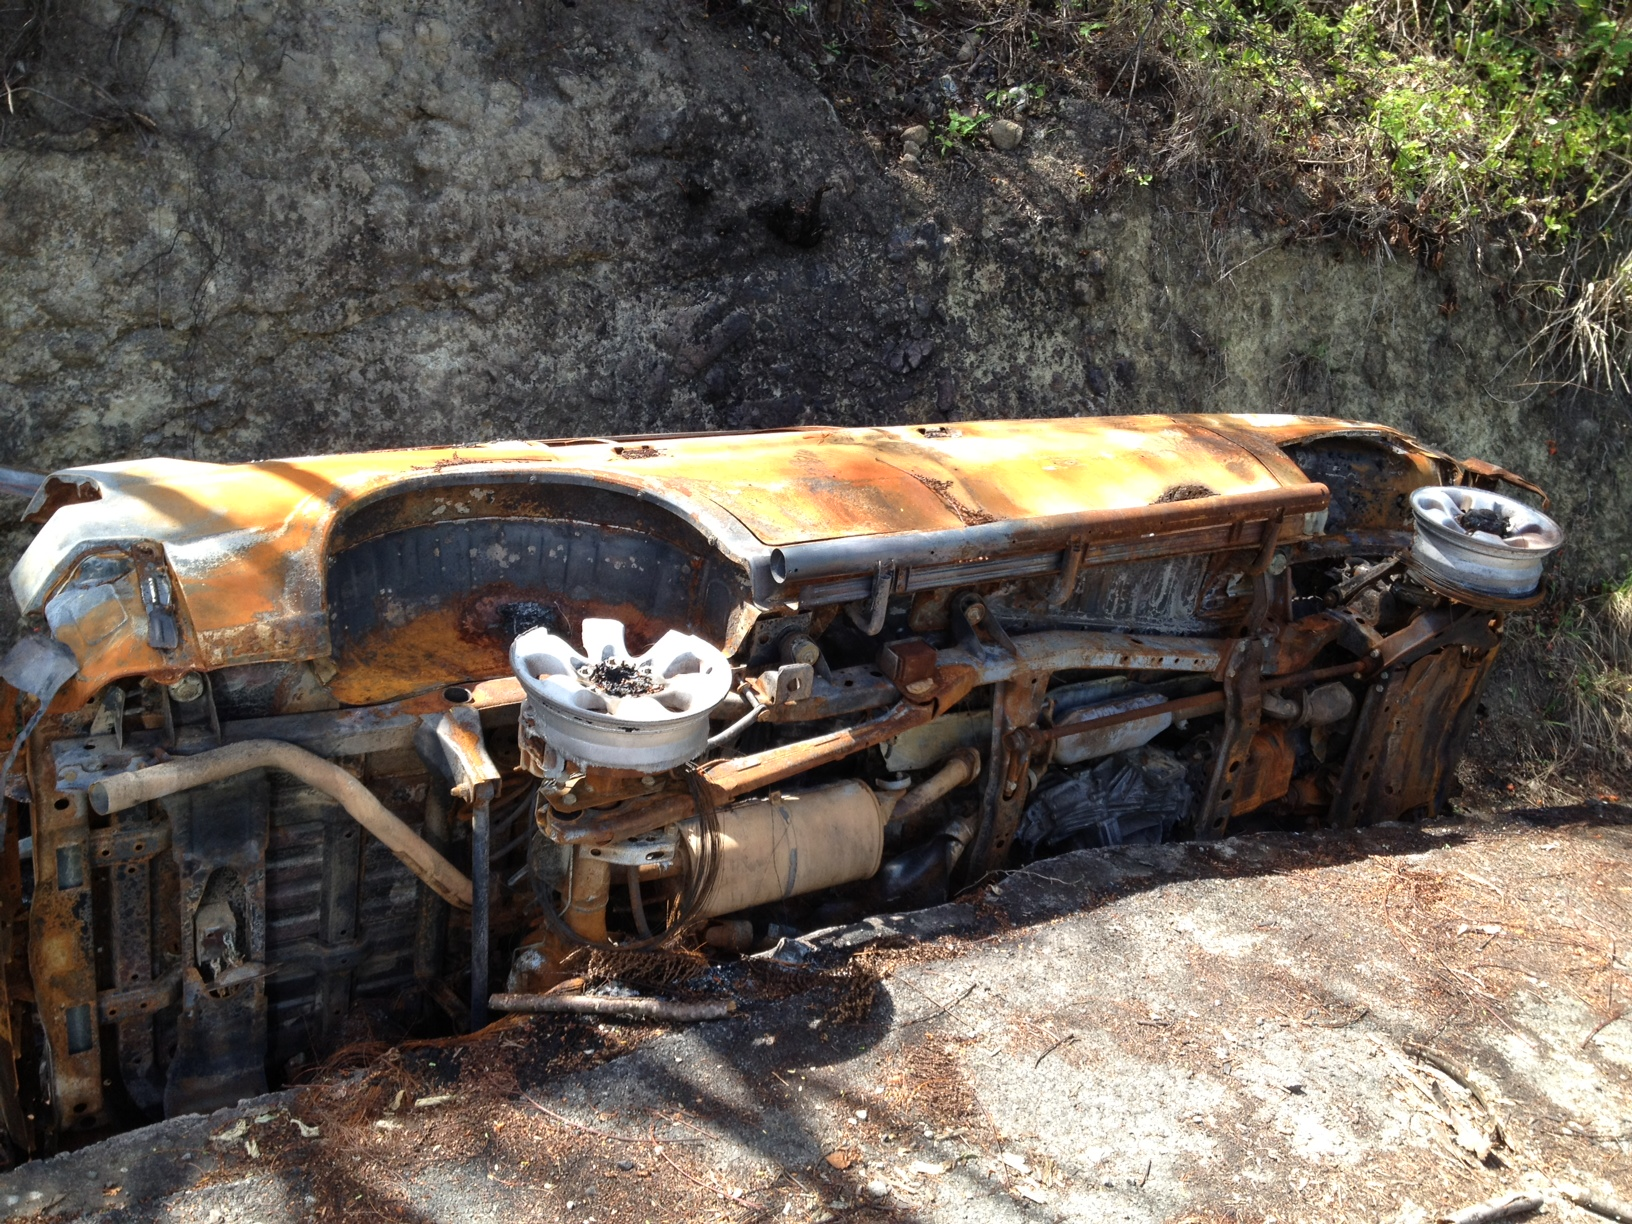 Car overturned in a rainditch along a road in Saint Lucia